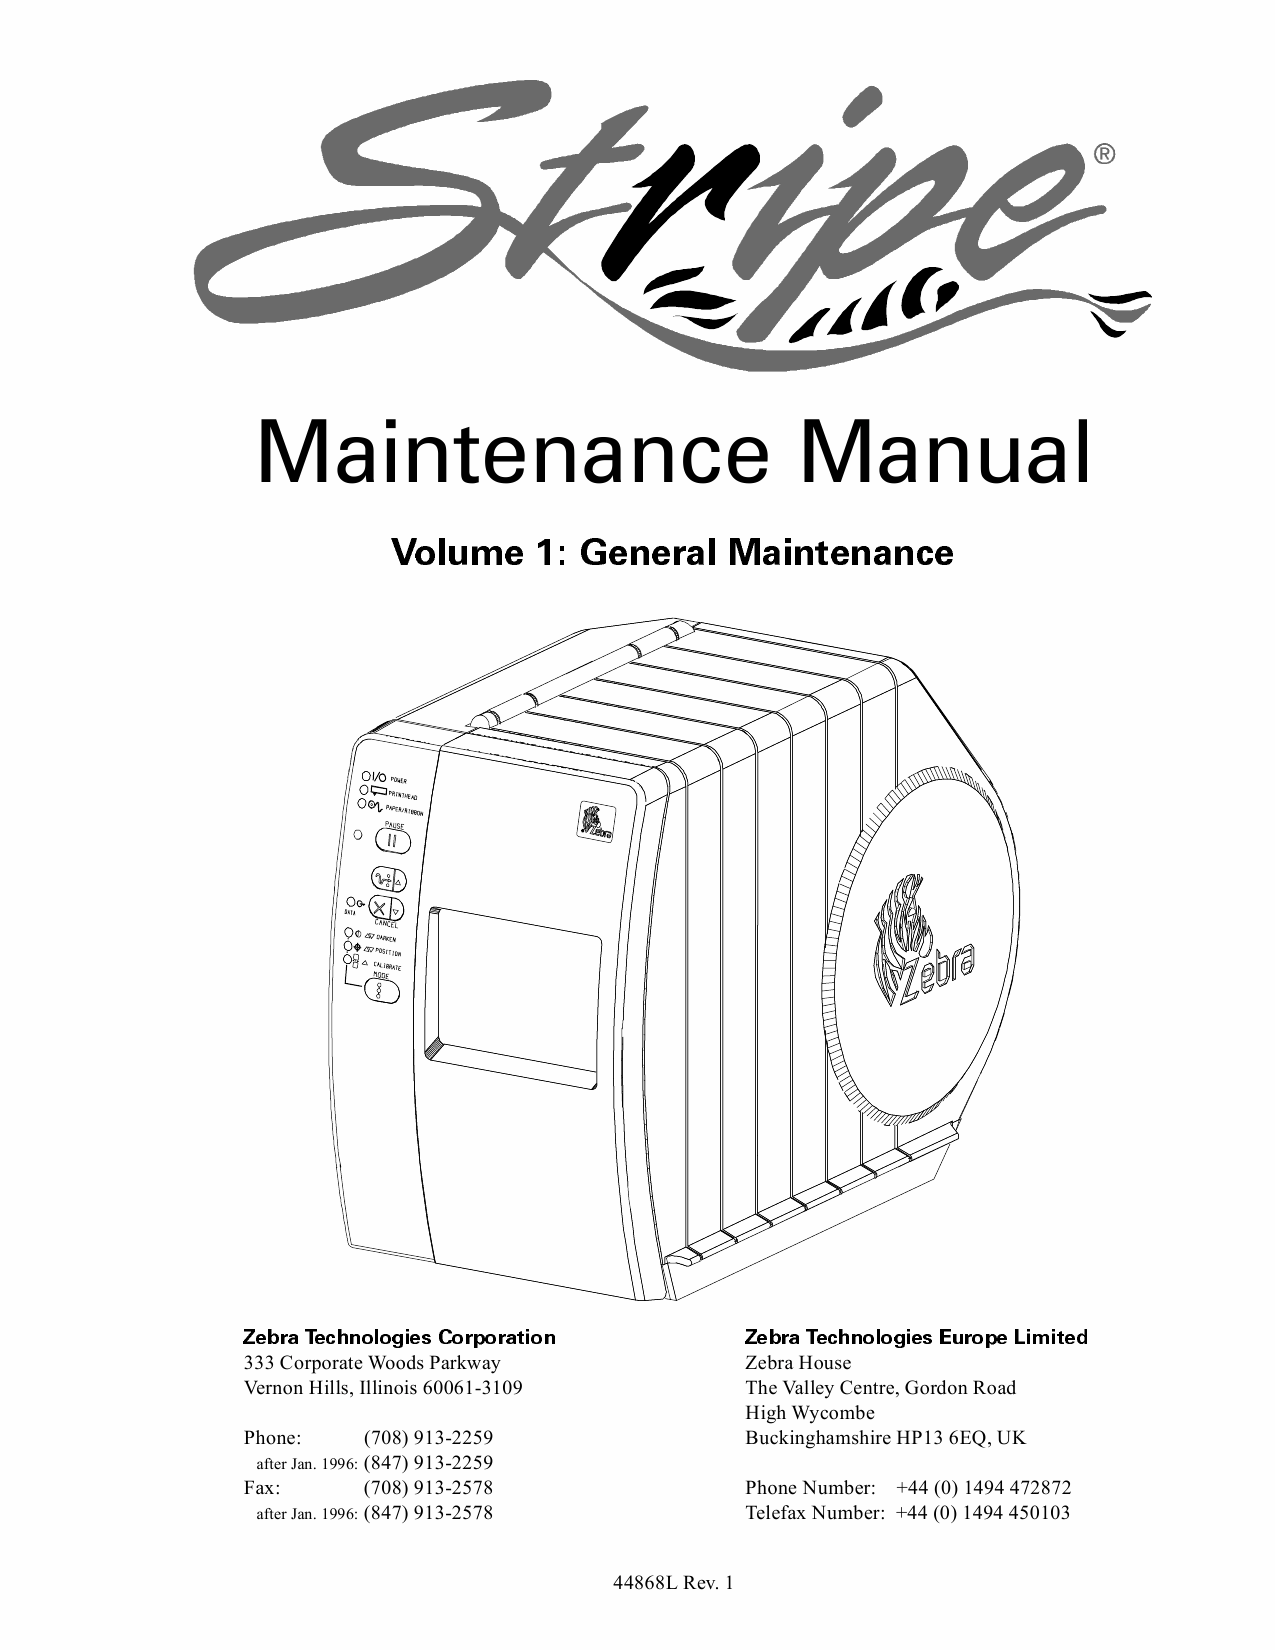 Cleaning Service Manual